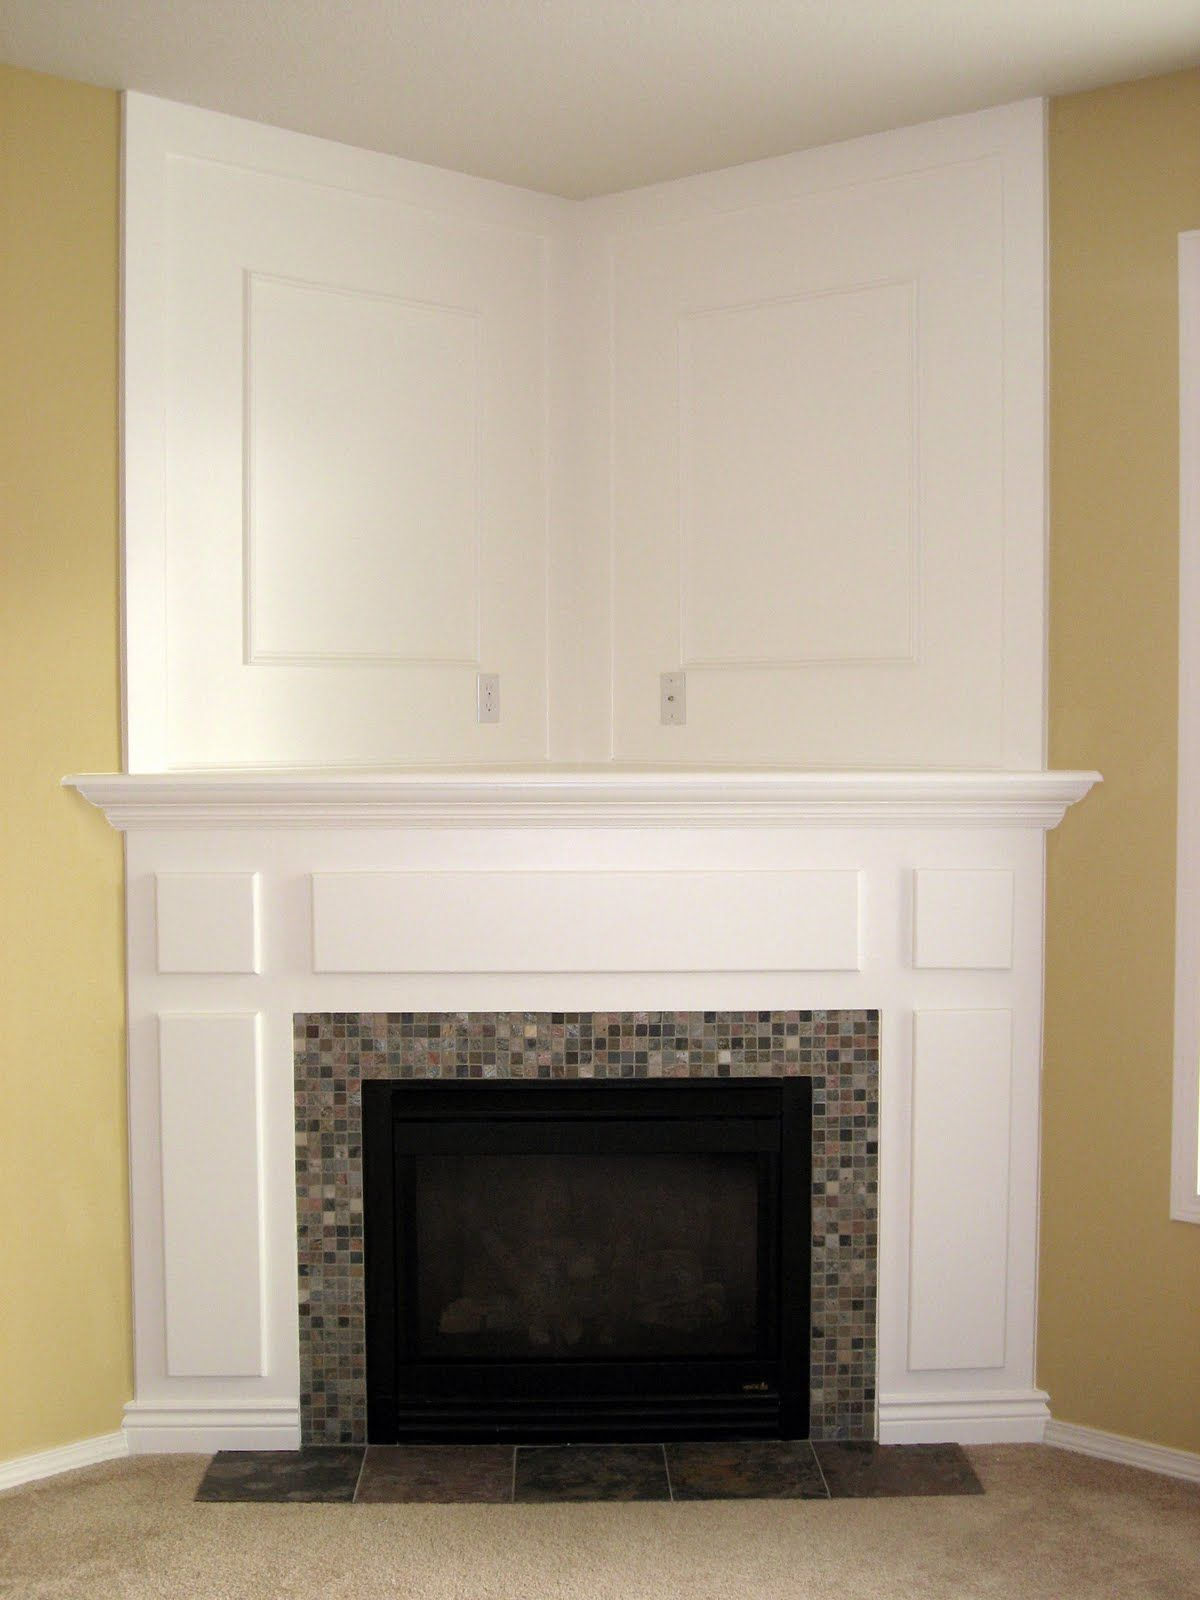 Great idea to replace the retro fireplace in our living Corner fireplace makeover ideas